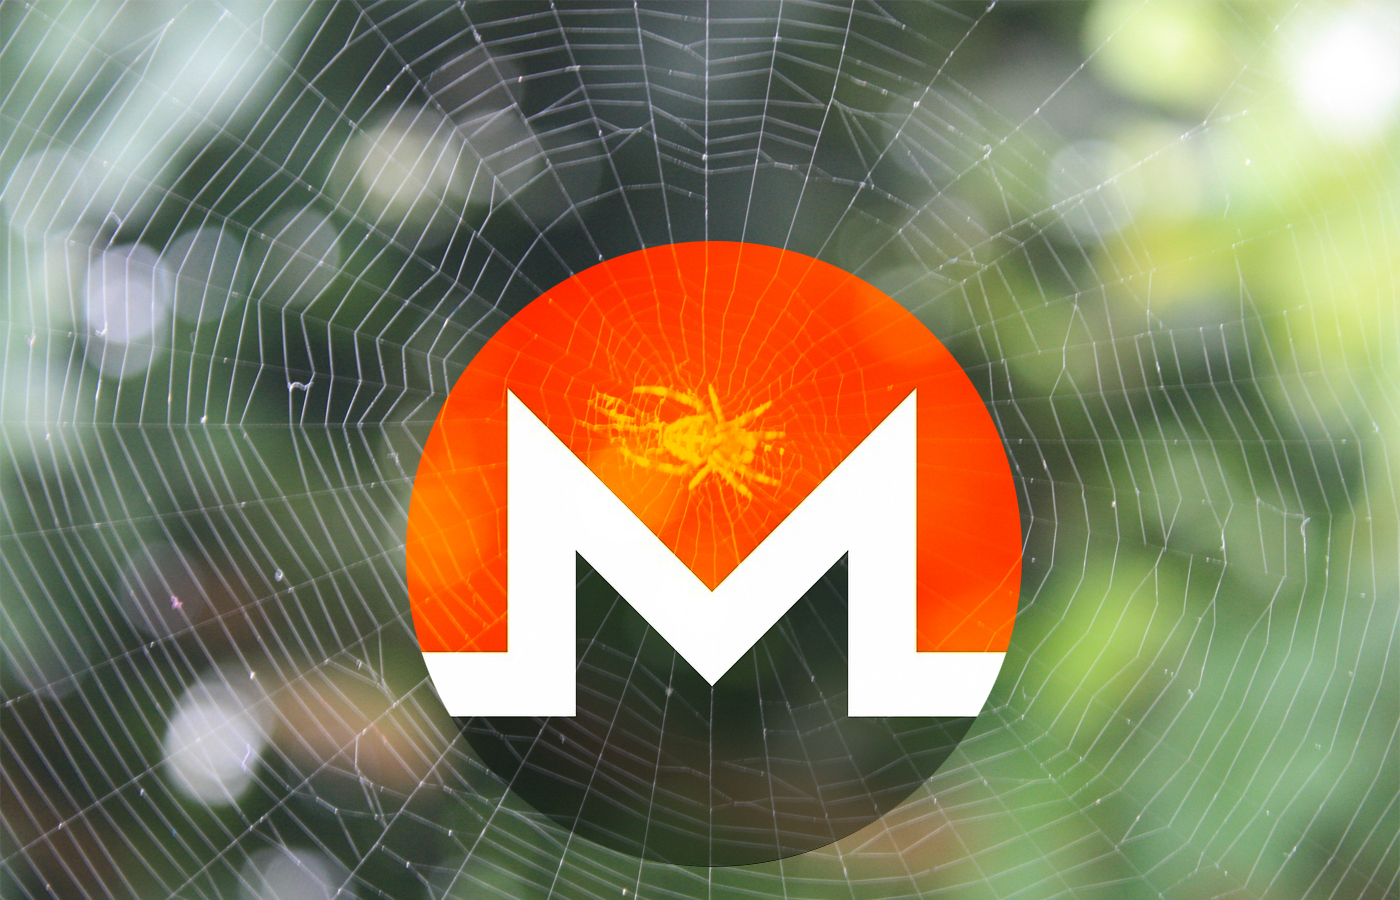 Corporate Systems Fall Prey To Monero Mining Malware